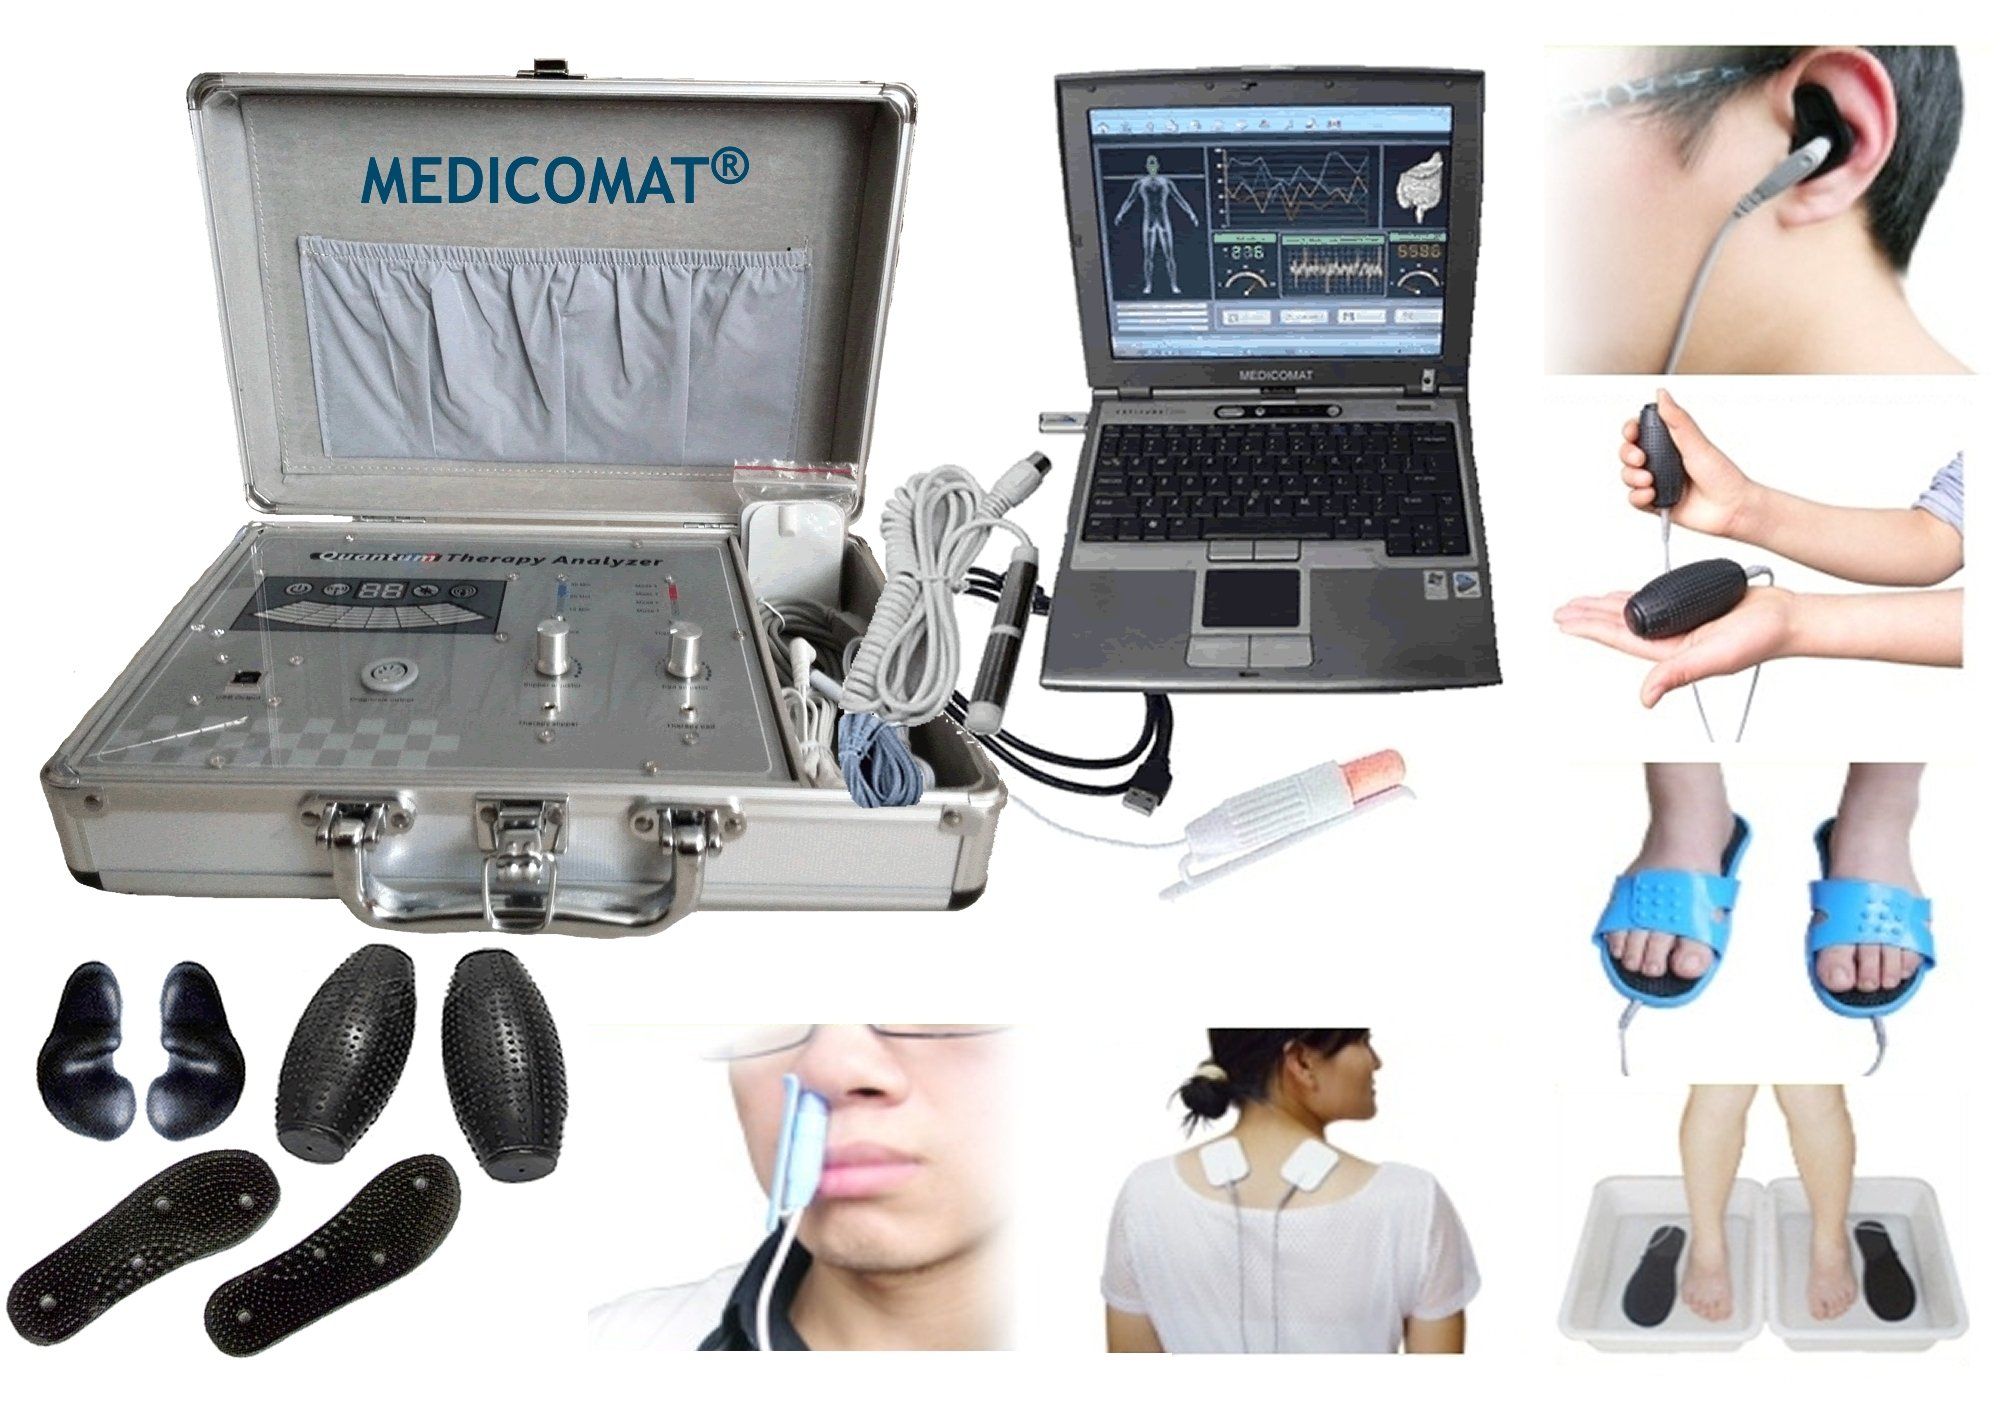 Laser Acupuncture Treatment Medicomat Laser Therapy and Health Analysis Computer System Accessories